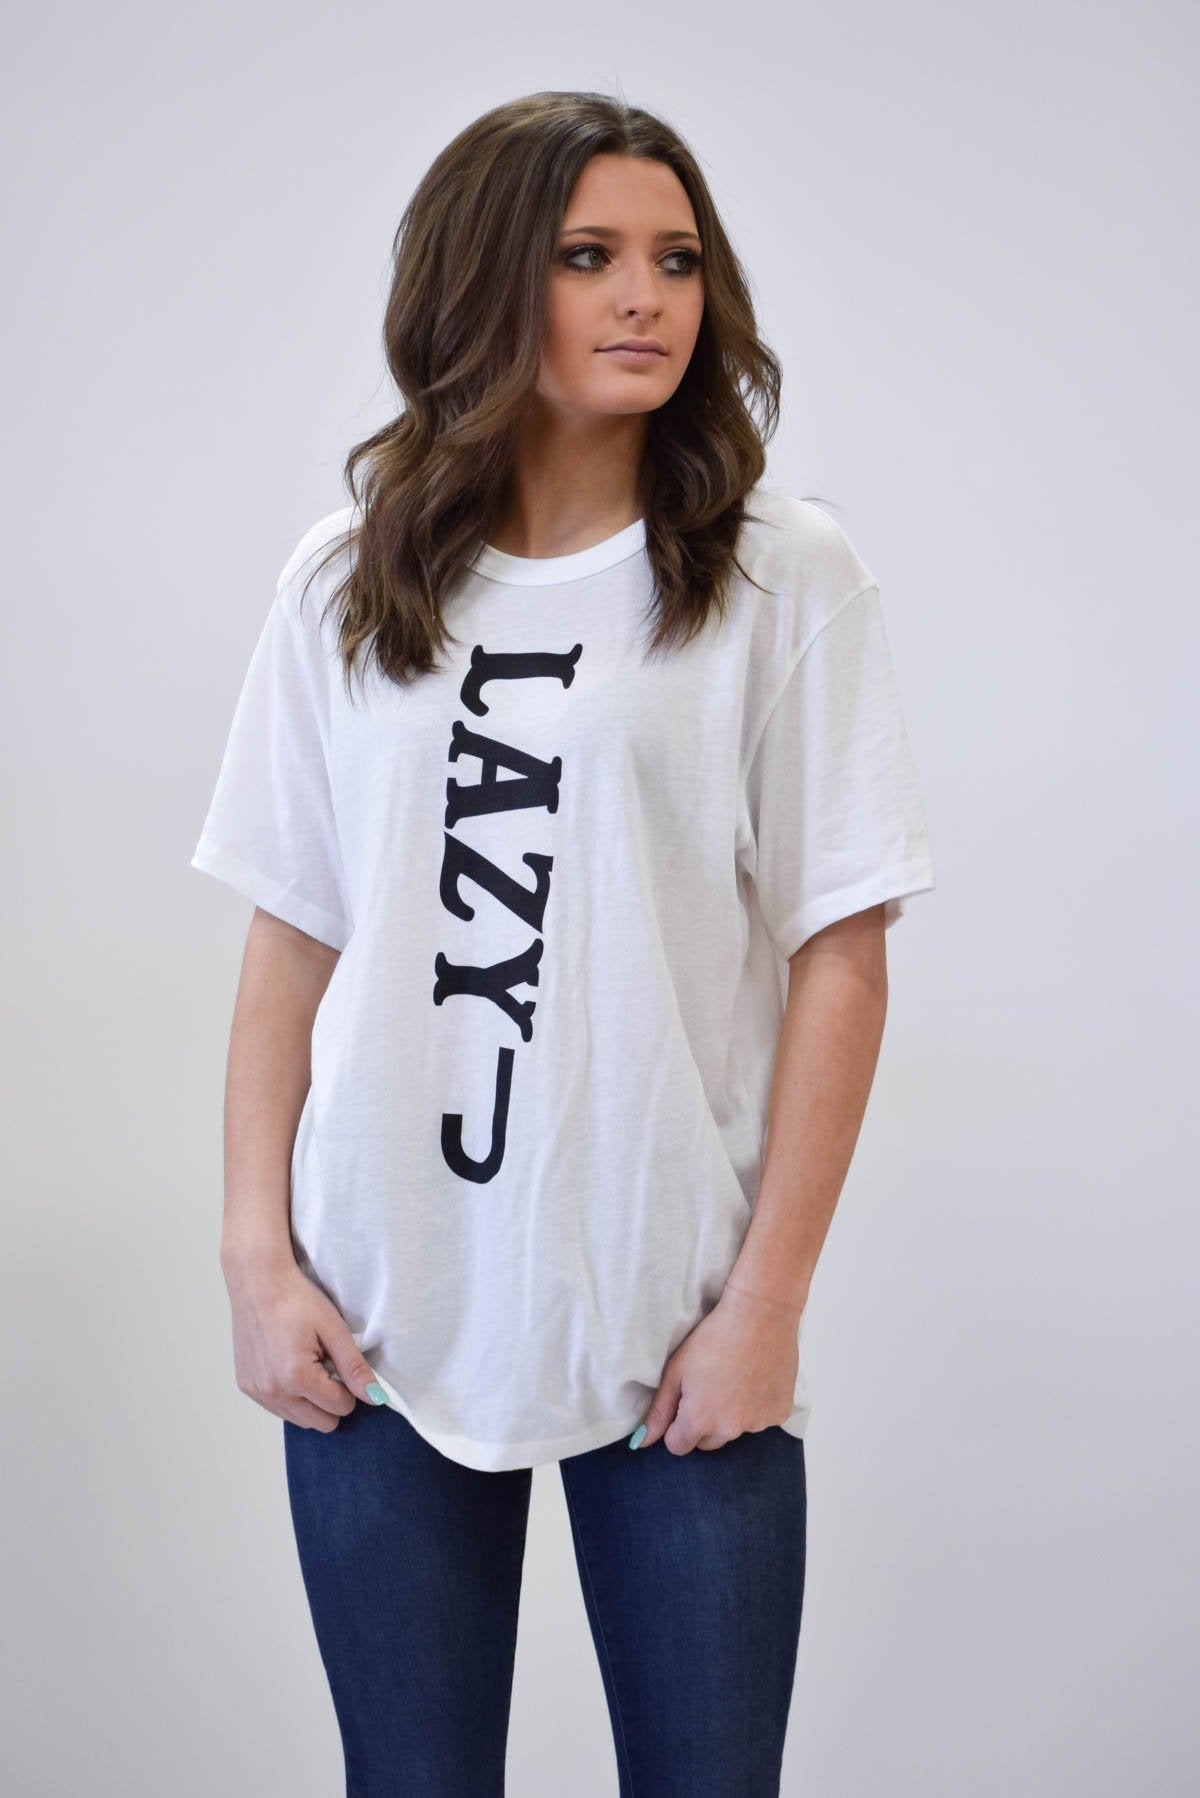 Lazy J Vertical Black & White Short Sleeve T-Shirt